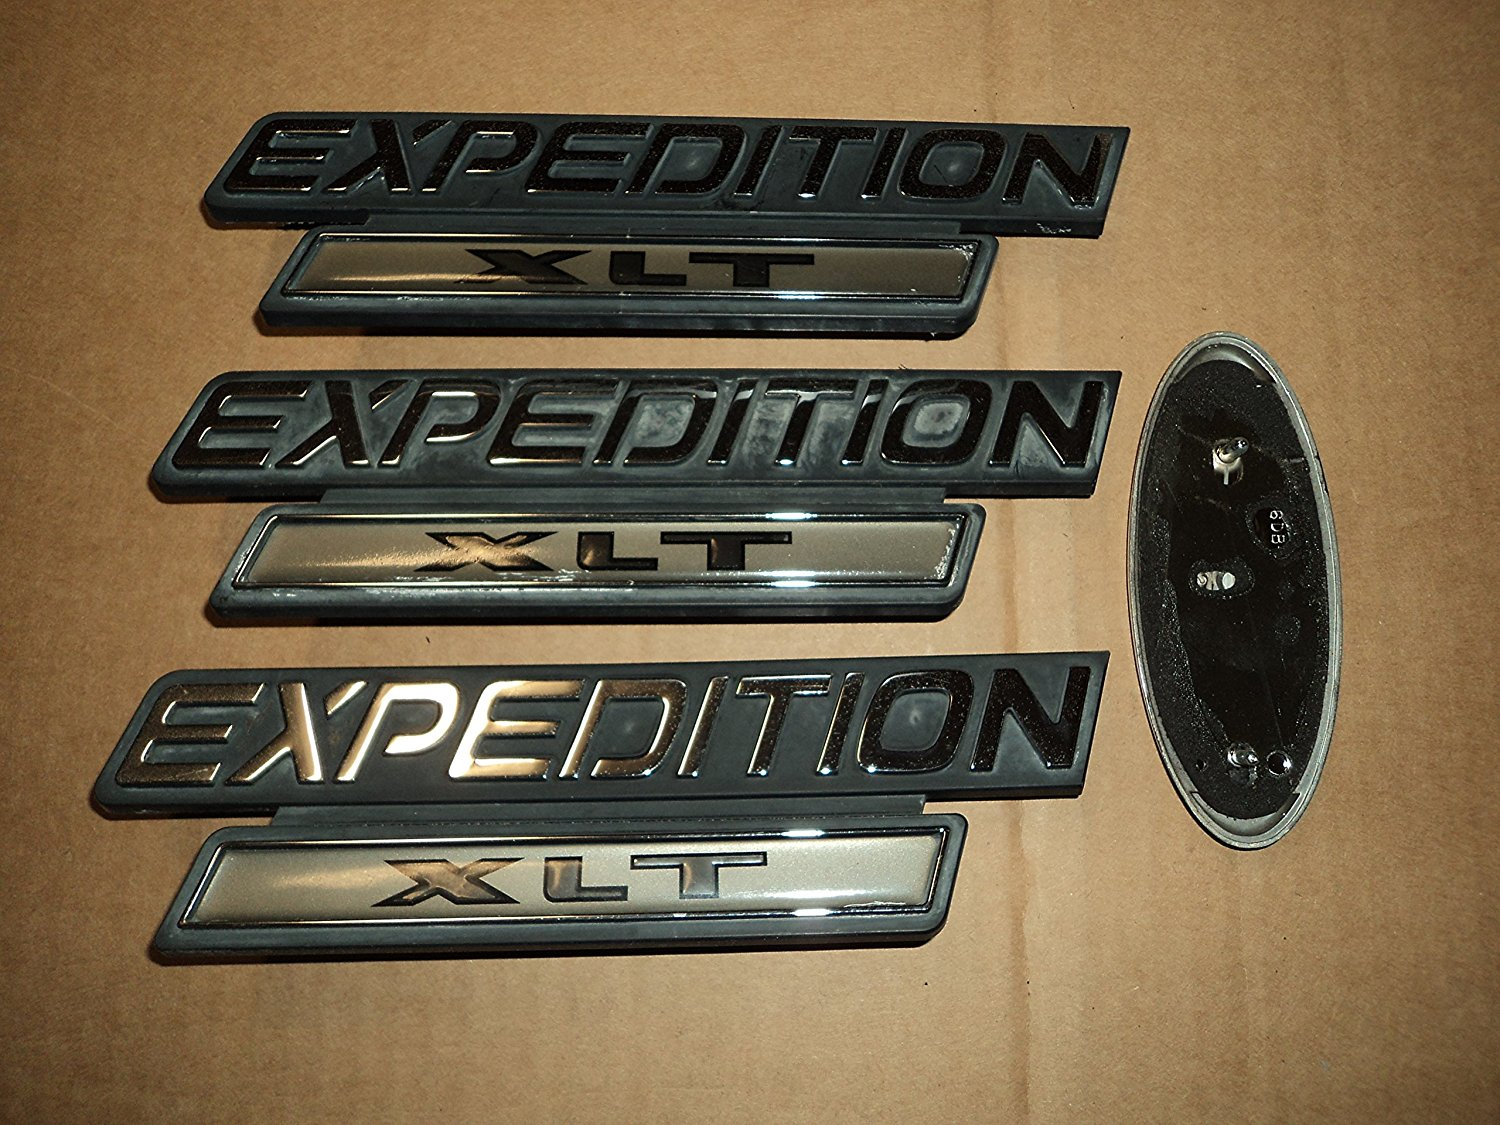 98-02 Ford Expedition Xlt Side Door Fender Logo F75B-16B114-FA Tailgate XL14-7443156-AB Used Emblem F6DB-7443156-AB Nameplate Decal Set Of 4 Decals